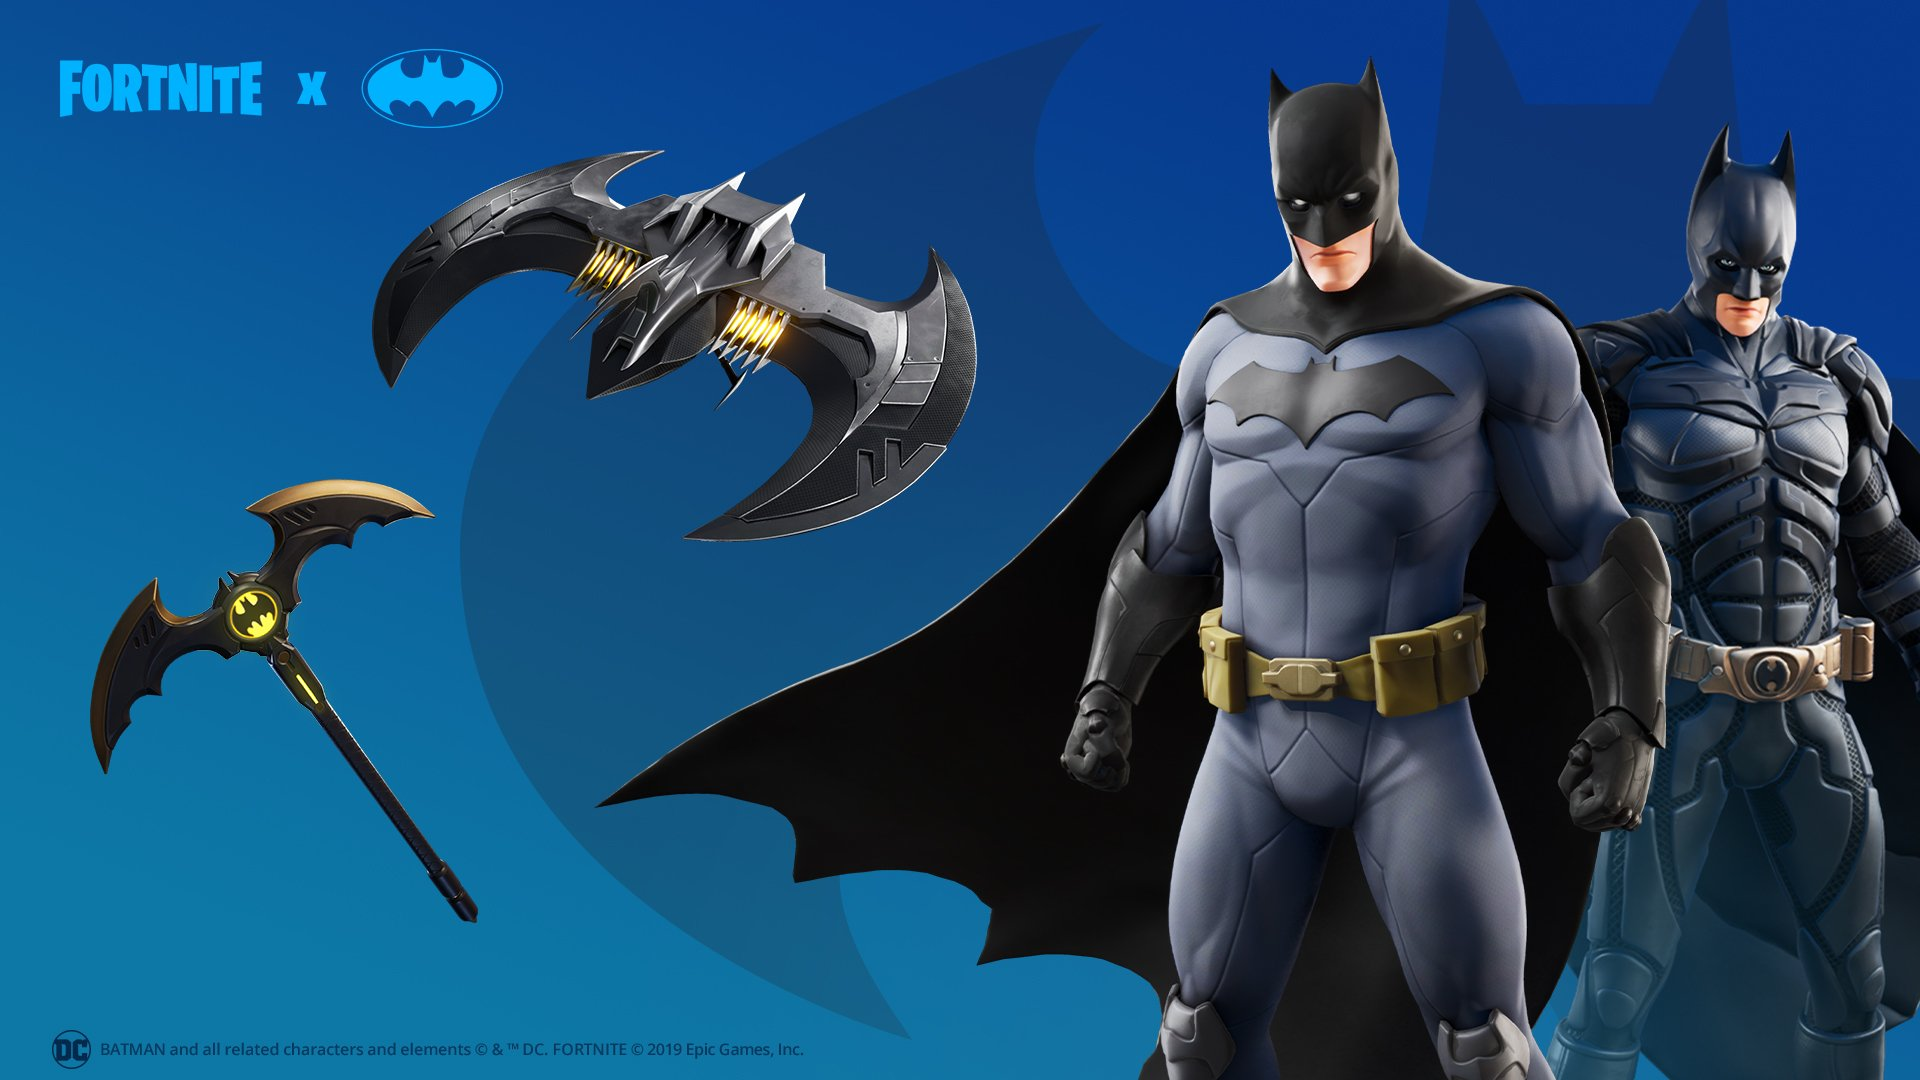 It S Always Darkest Before The Dawn Grab The Caped Crusader Bundle Including The Batman Comic Book Outfit The Dark Knight Movie Outfit The Batman Pickaxe And The Batwing Glider In The Store